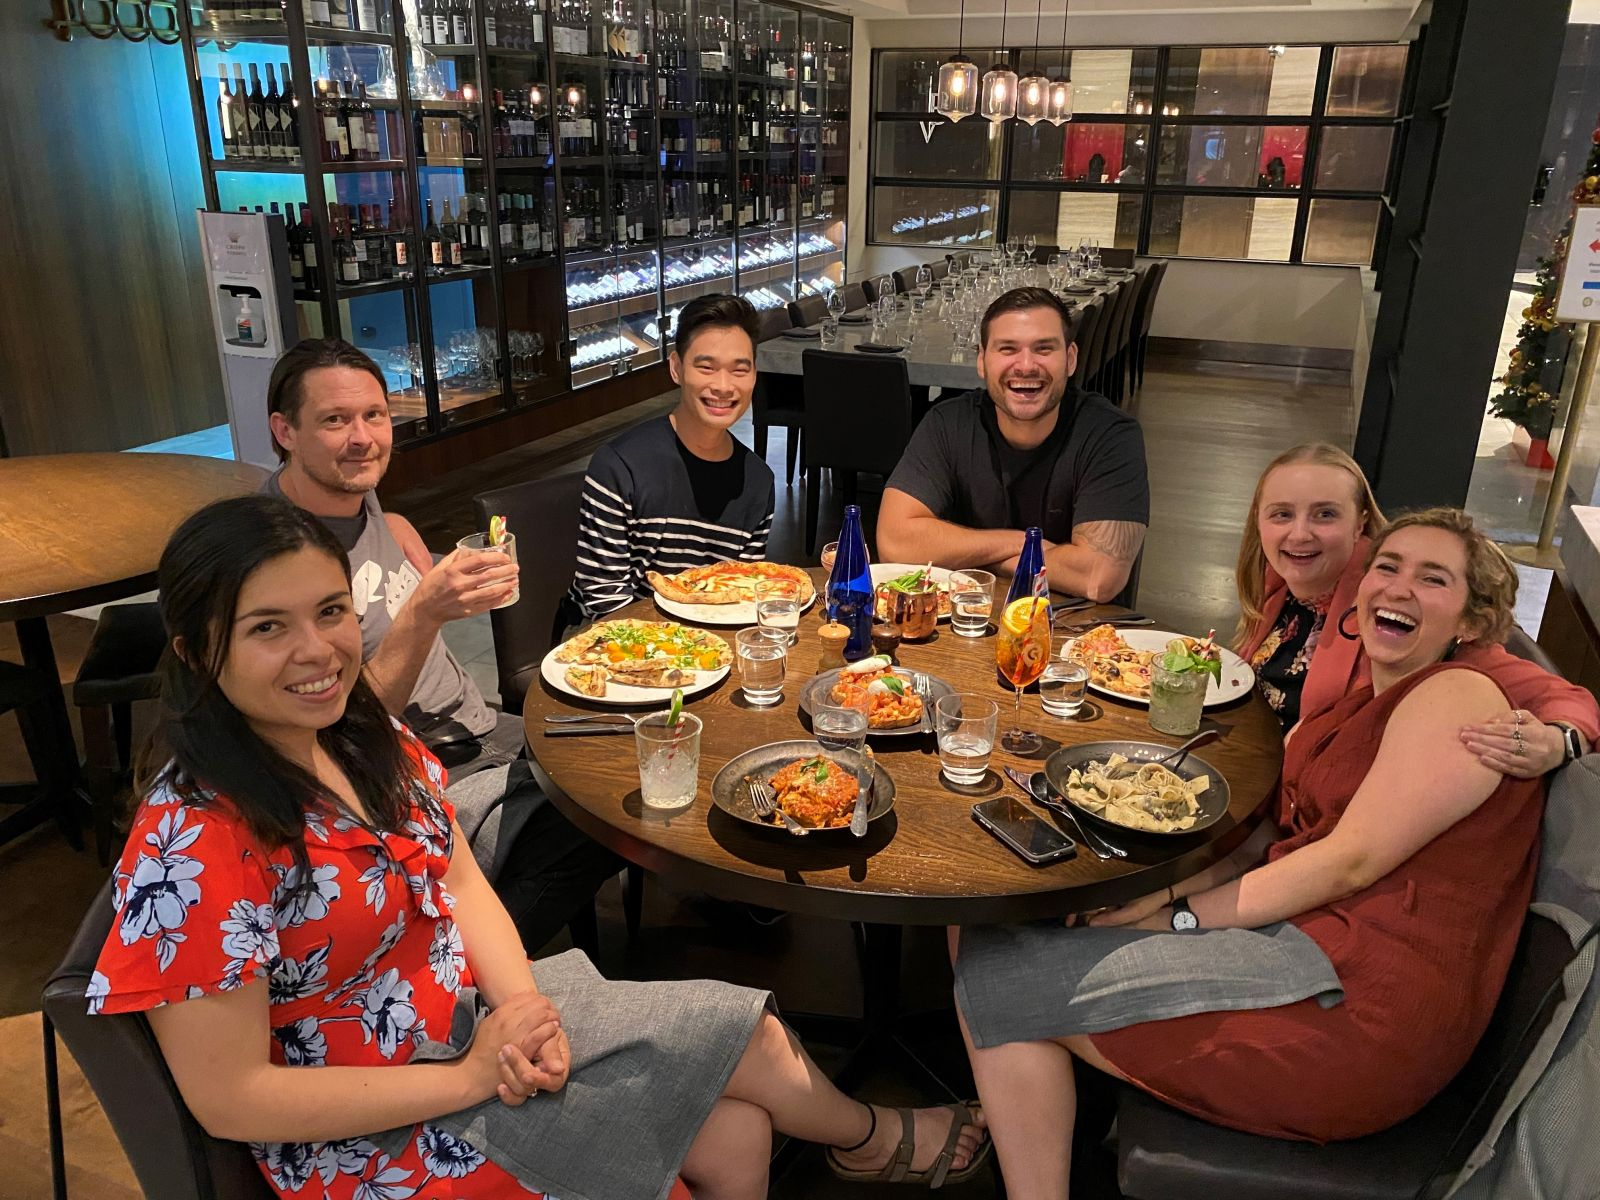 Cassandra Embling (2nd from right) and Mladen Jovanovic (3rd from right) at an end-of-year dinner with BindiMaps' team members (Source: BindiMaps)